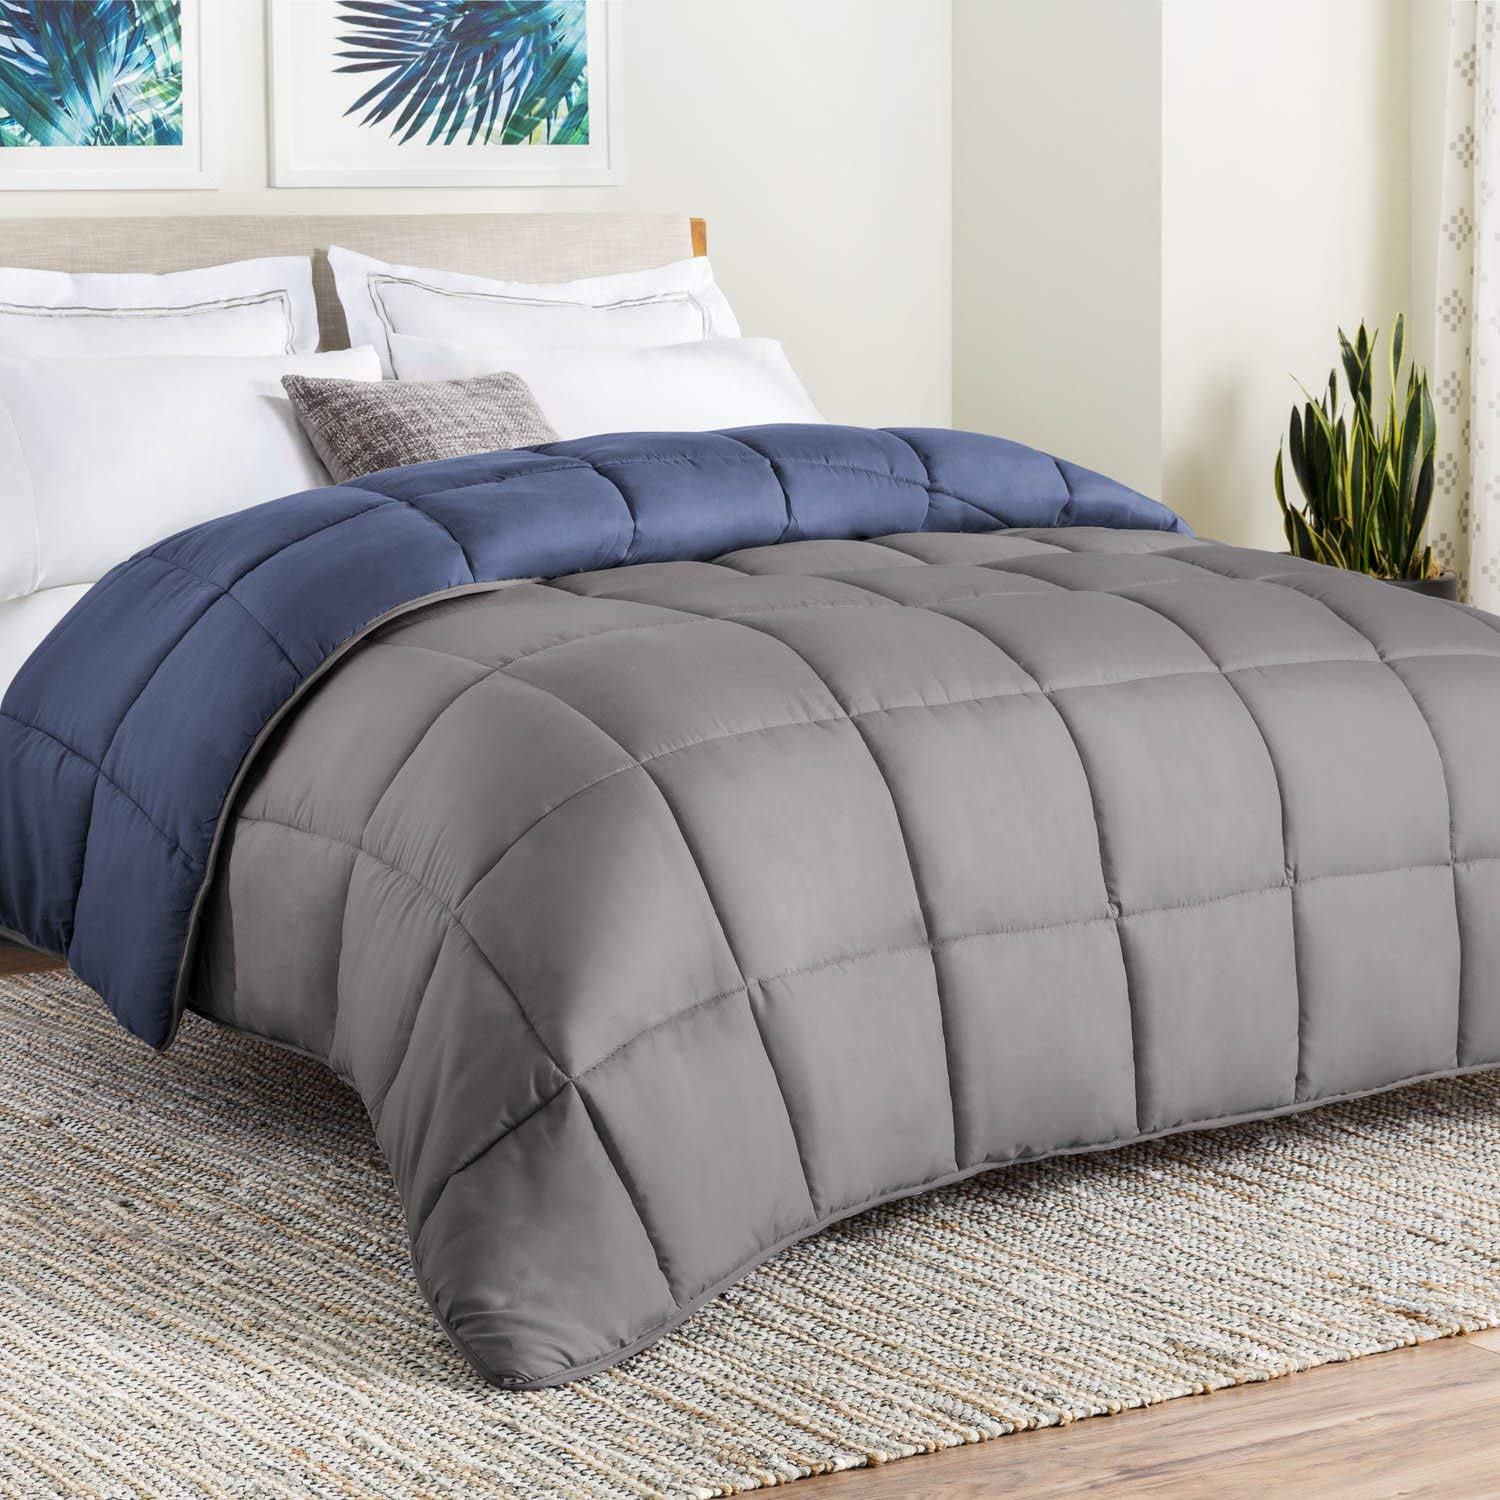 Linenspa Comforter Review by www.snoremagazine.com